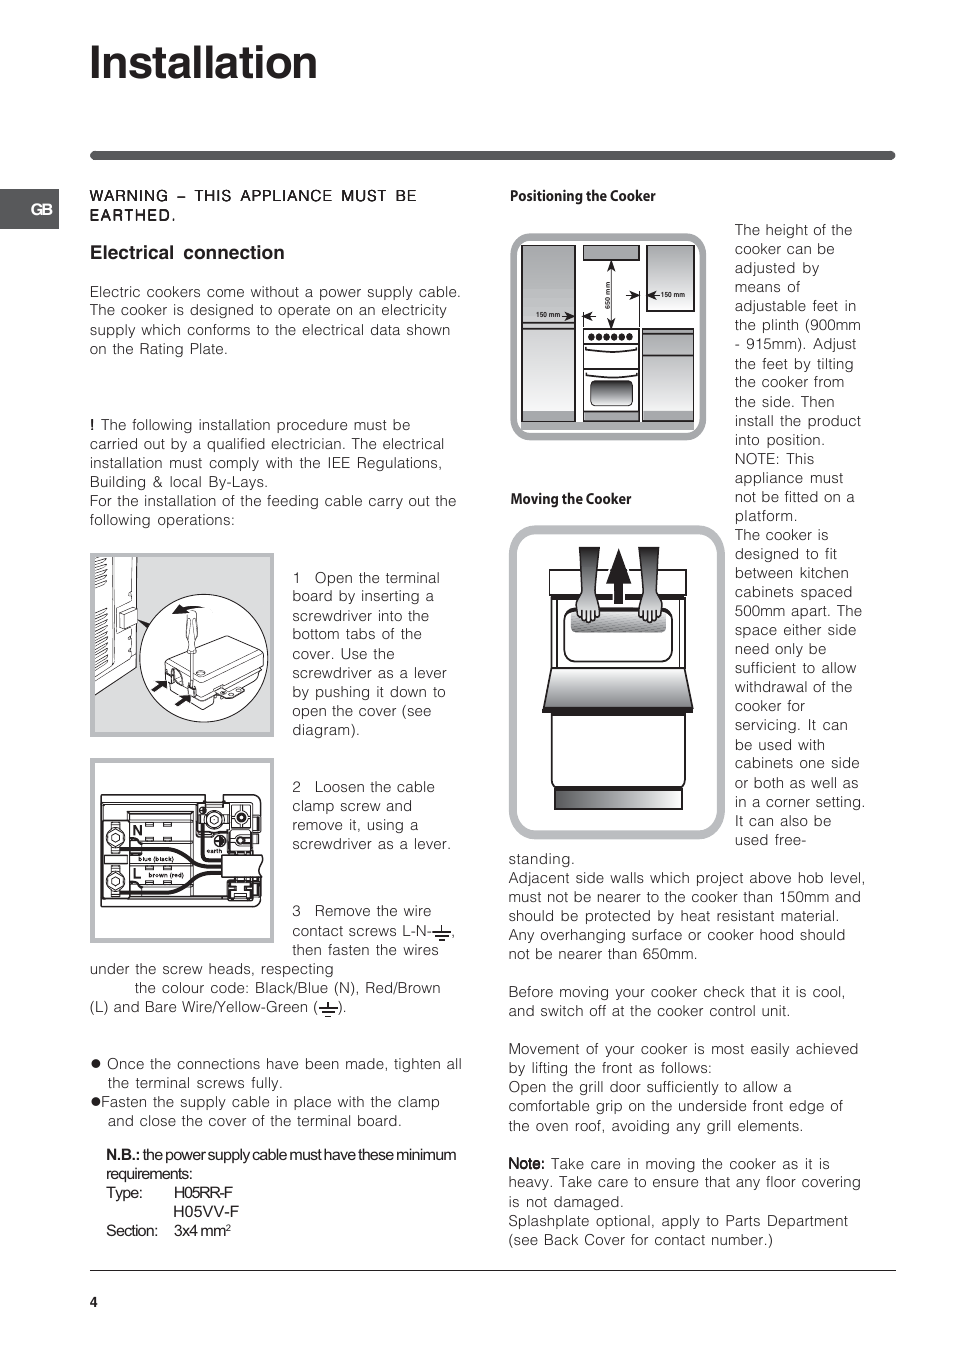 Installation Electrical Connection Indesit Id50e1w User Manual Wiring Regulations Cooker Switch Page 4 24